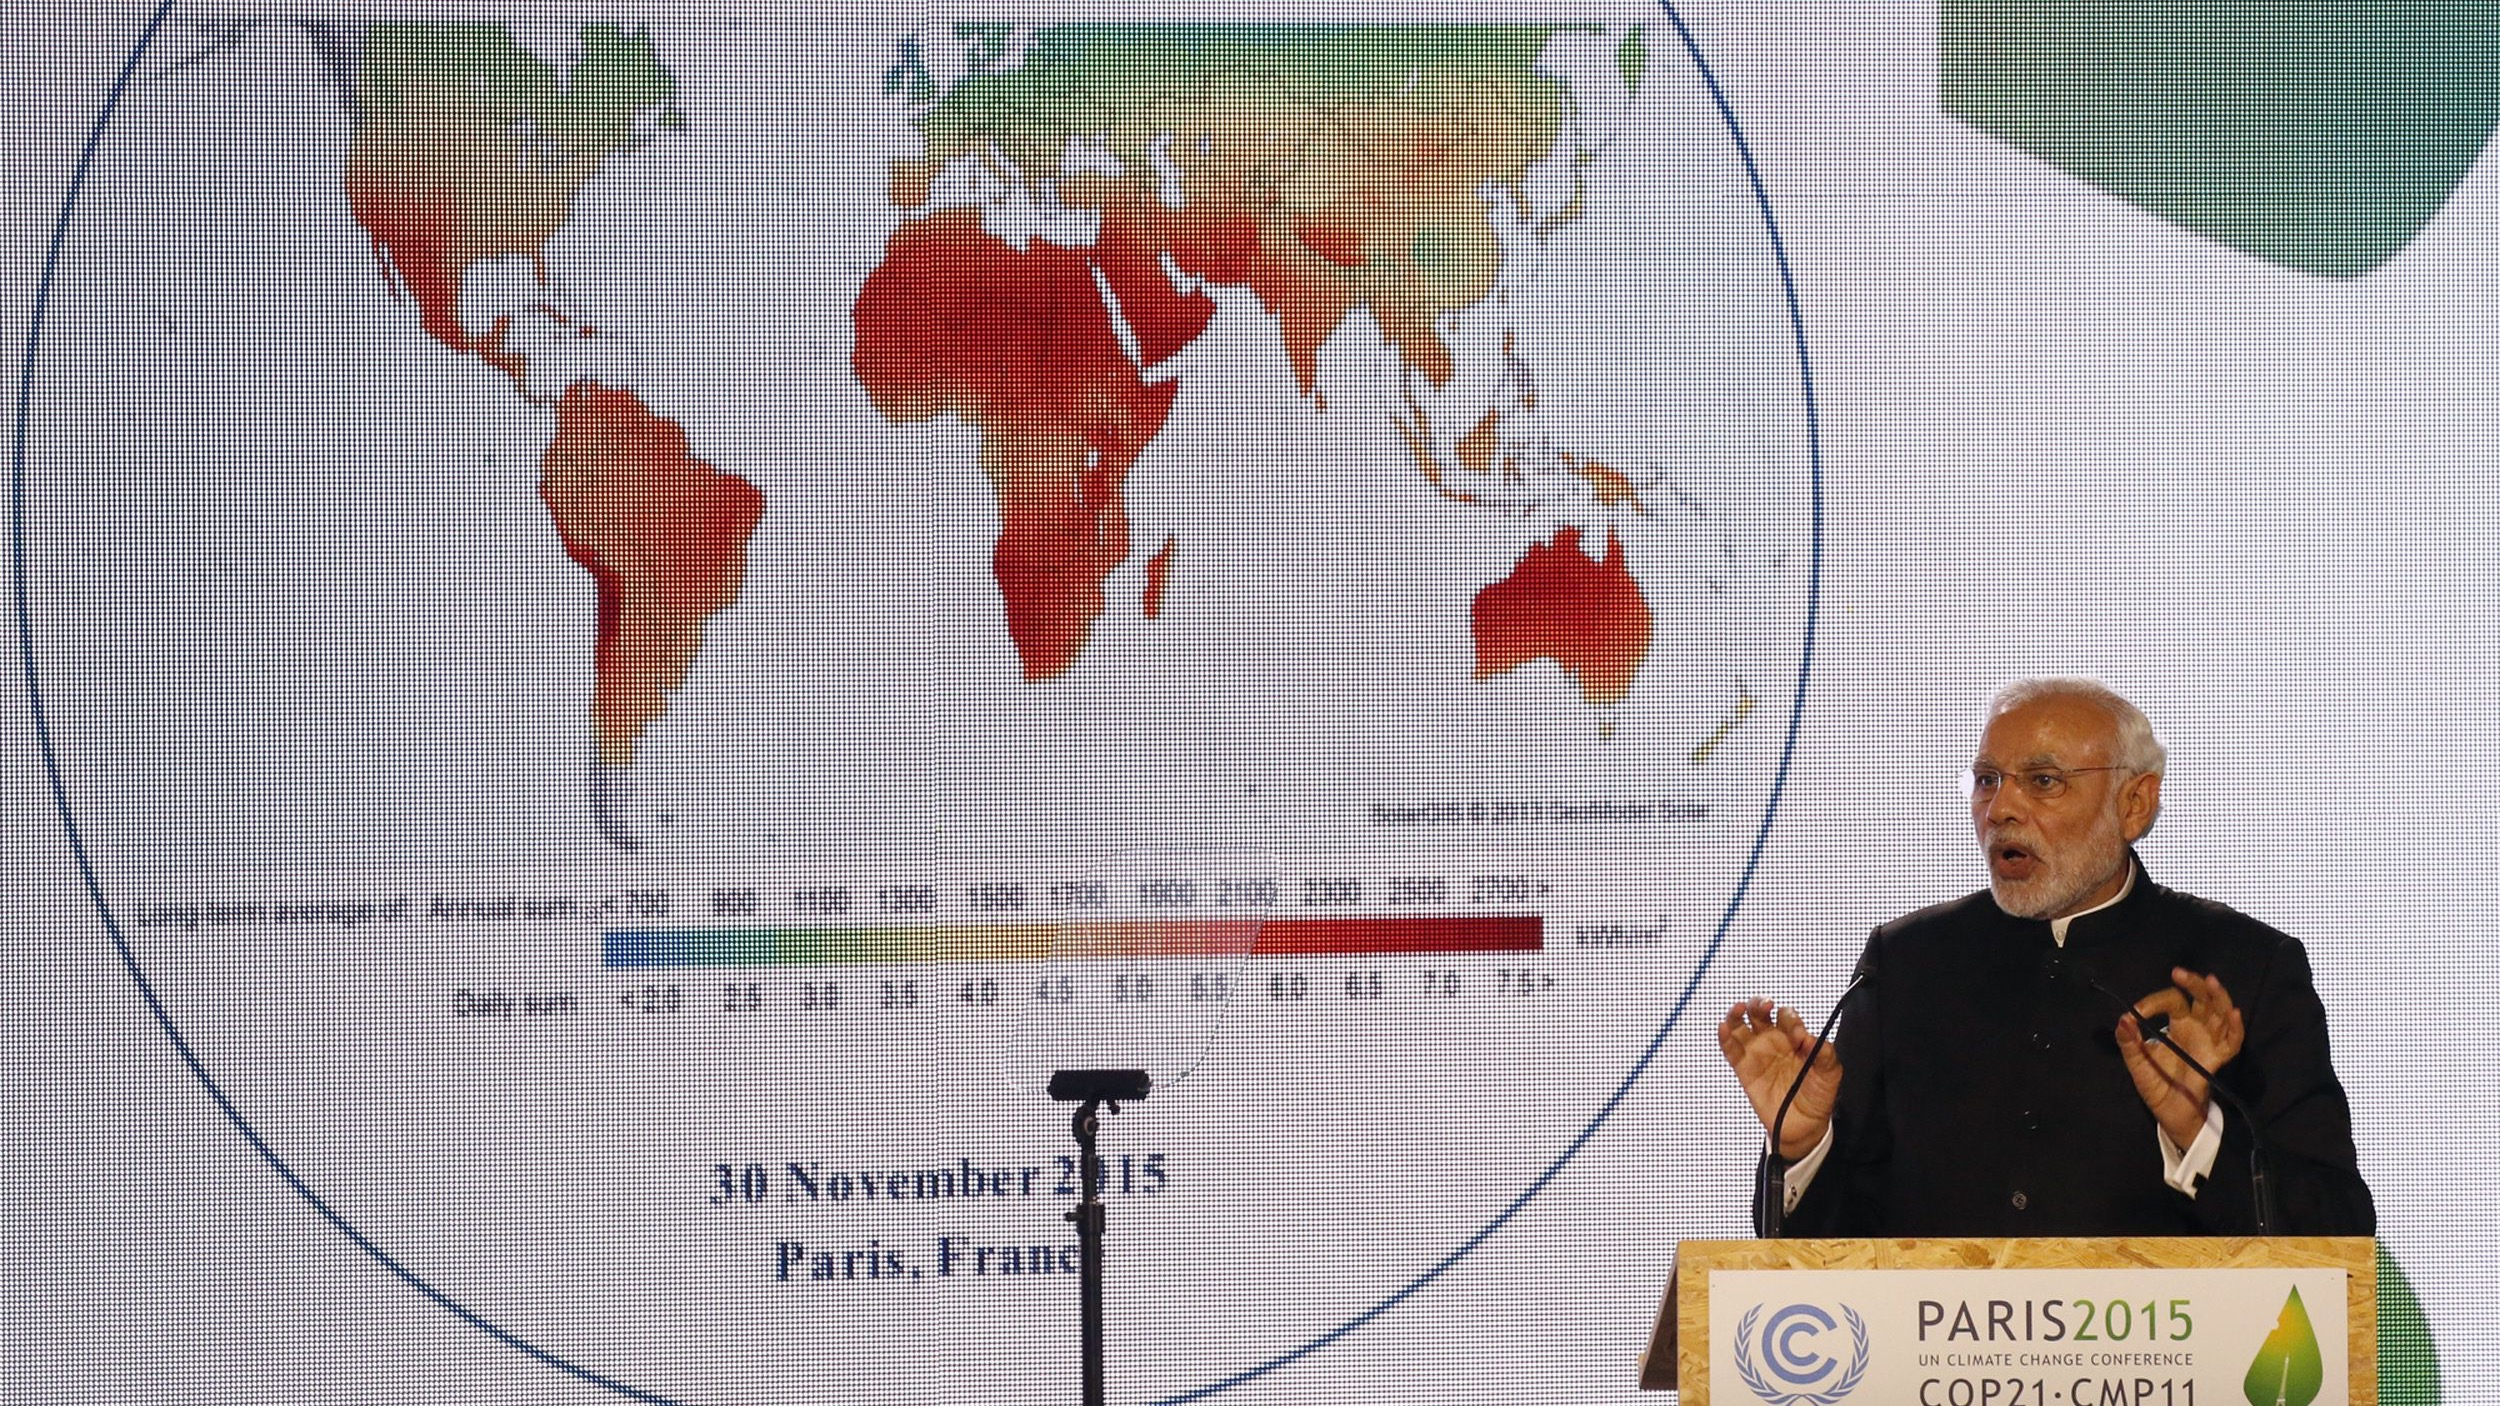 India's Prime Minister Narendra Modi delivers a speech during the launching of the International Solar Alliance